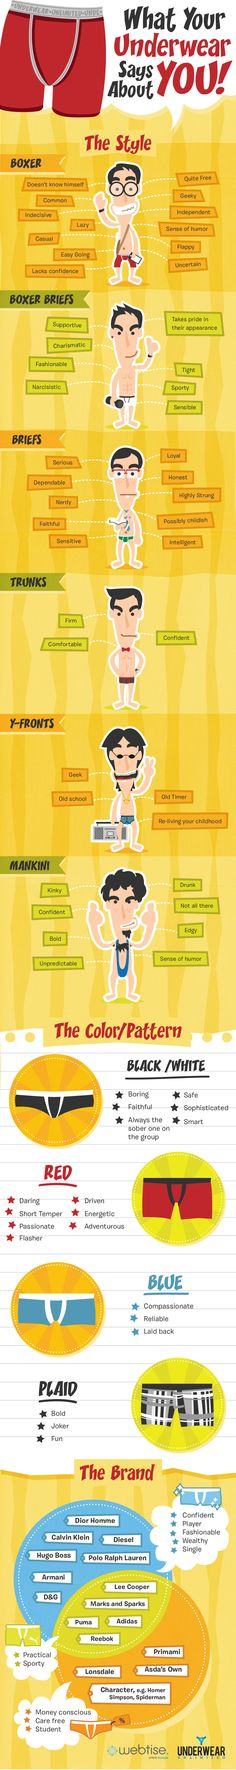 What do Your Undies say about you